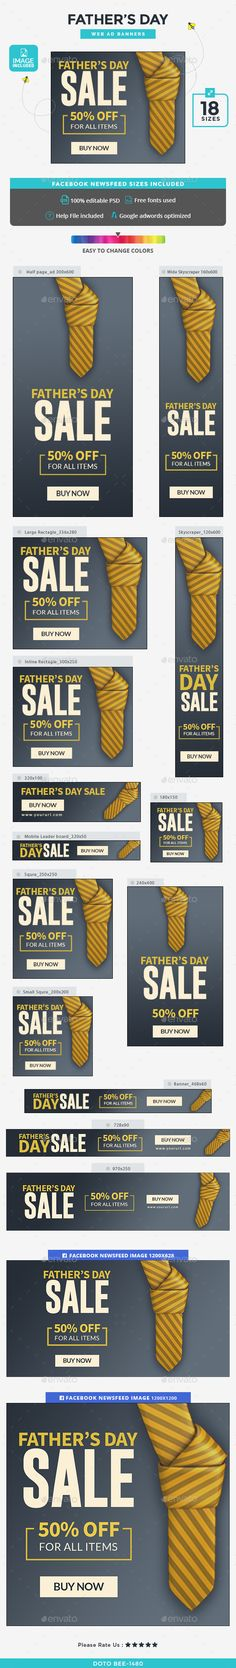 Fathers Day Banners - Image Included - Banners & Ads Web Template PSD. Download here: http://graphicriver.net/item/fathers-day-banners-image-included/16596368?ref=yinkira